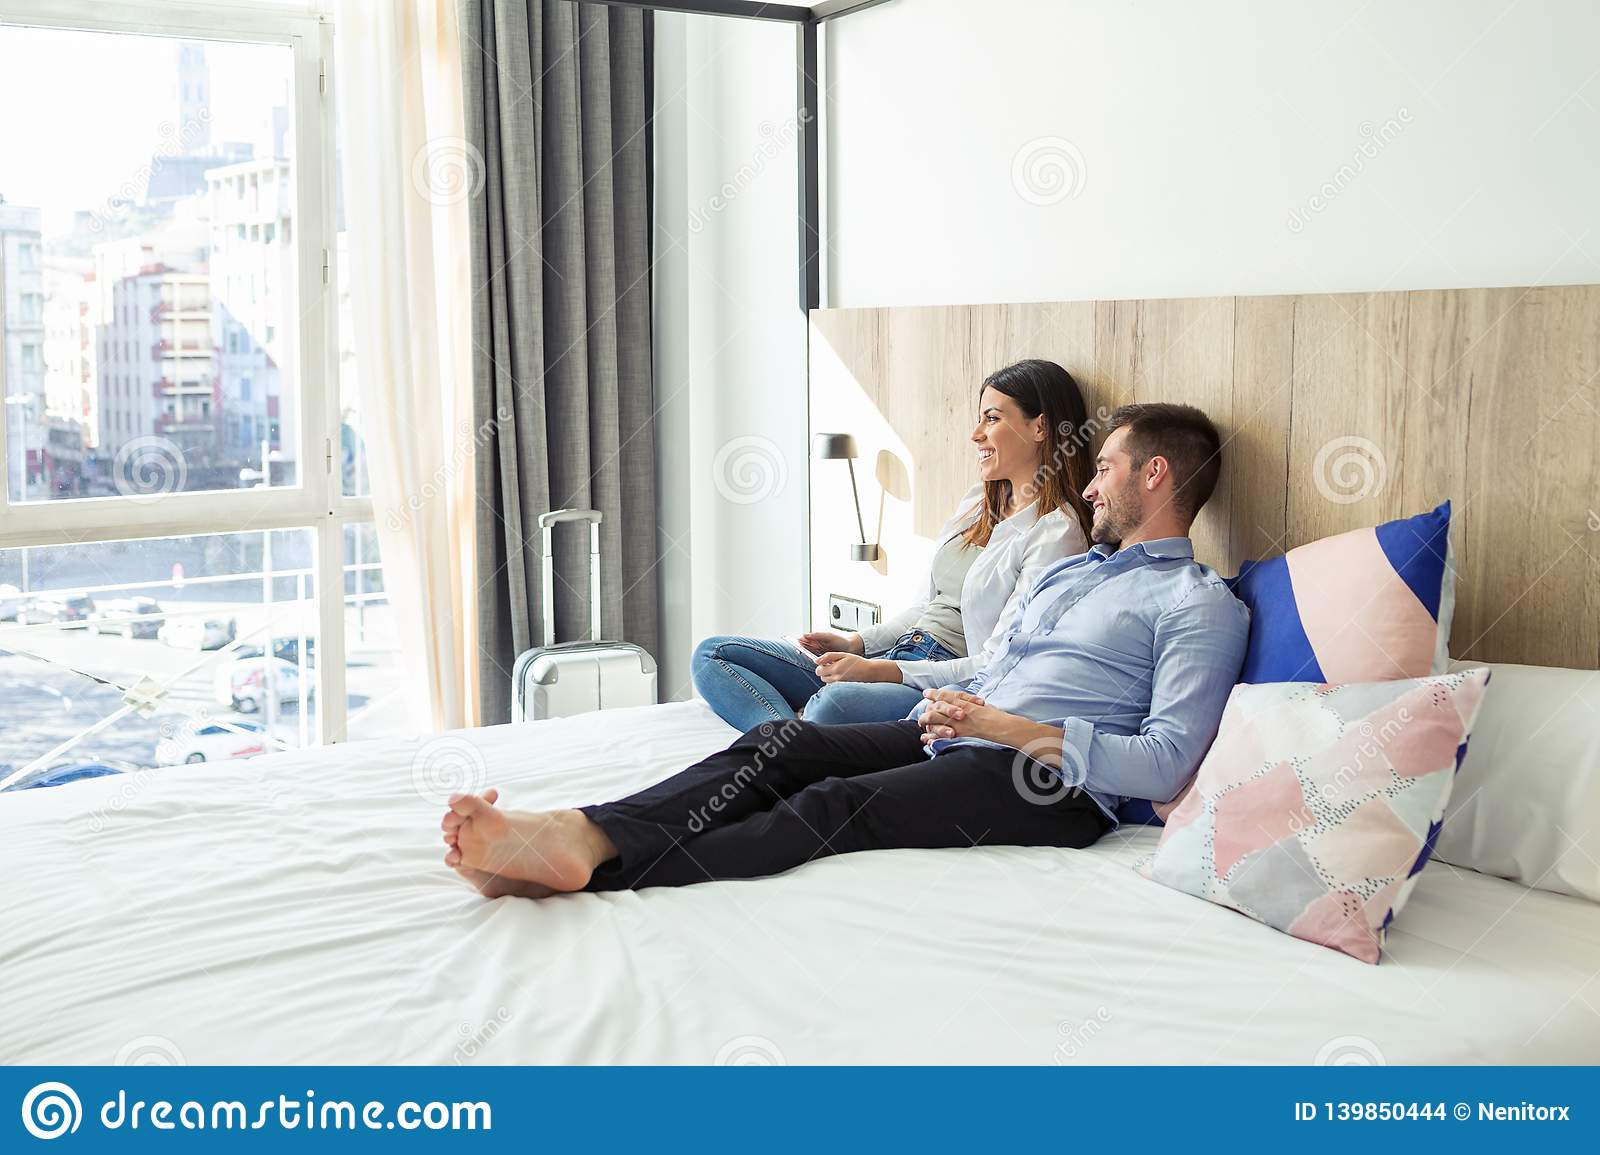 Beautiful lovely young couple lying and relaxing on bed looking sideways at hotel room